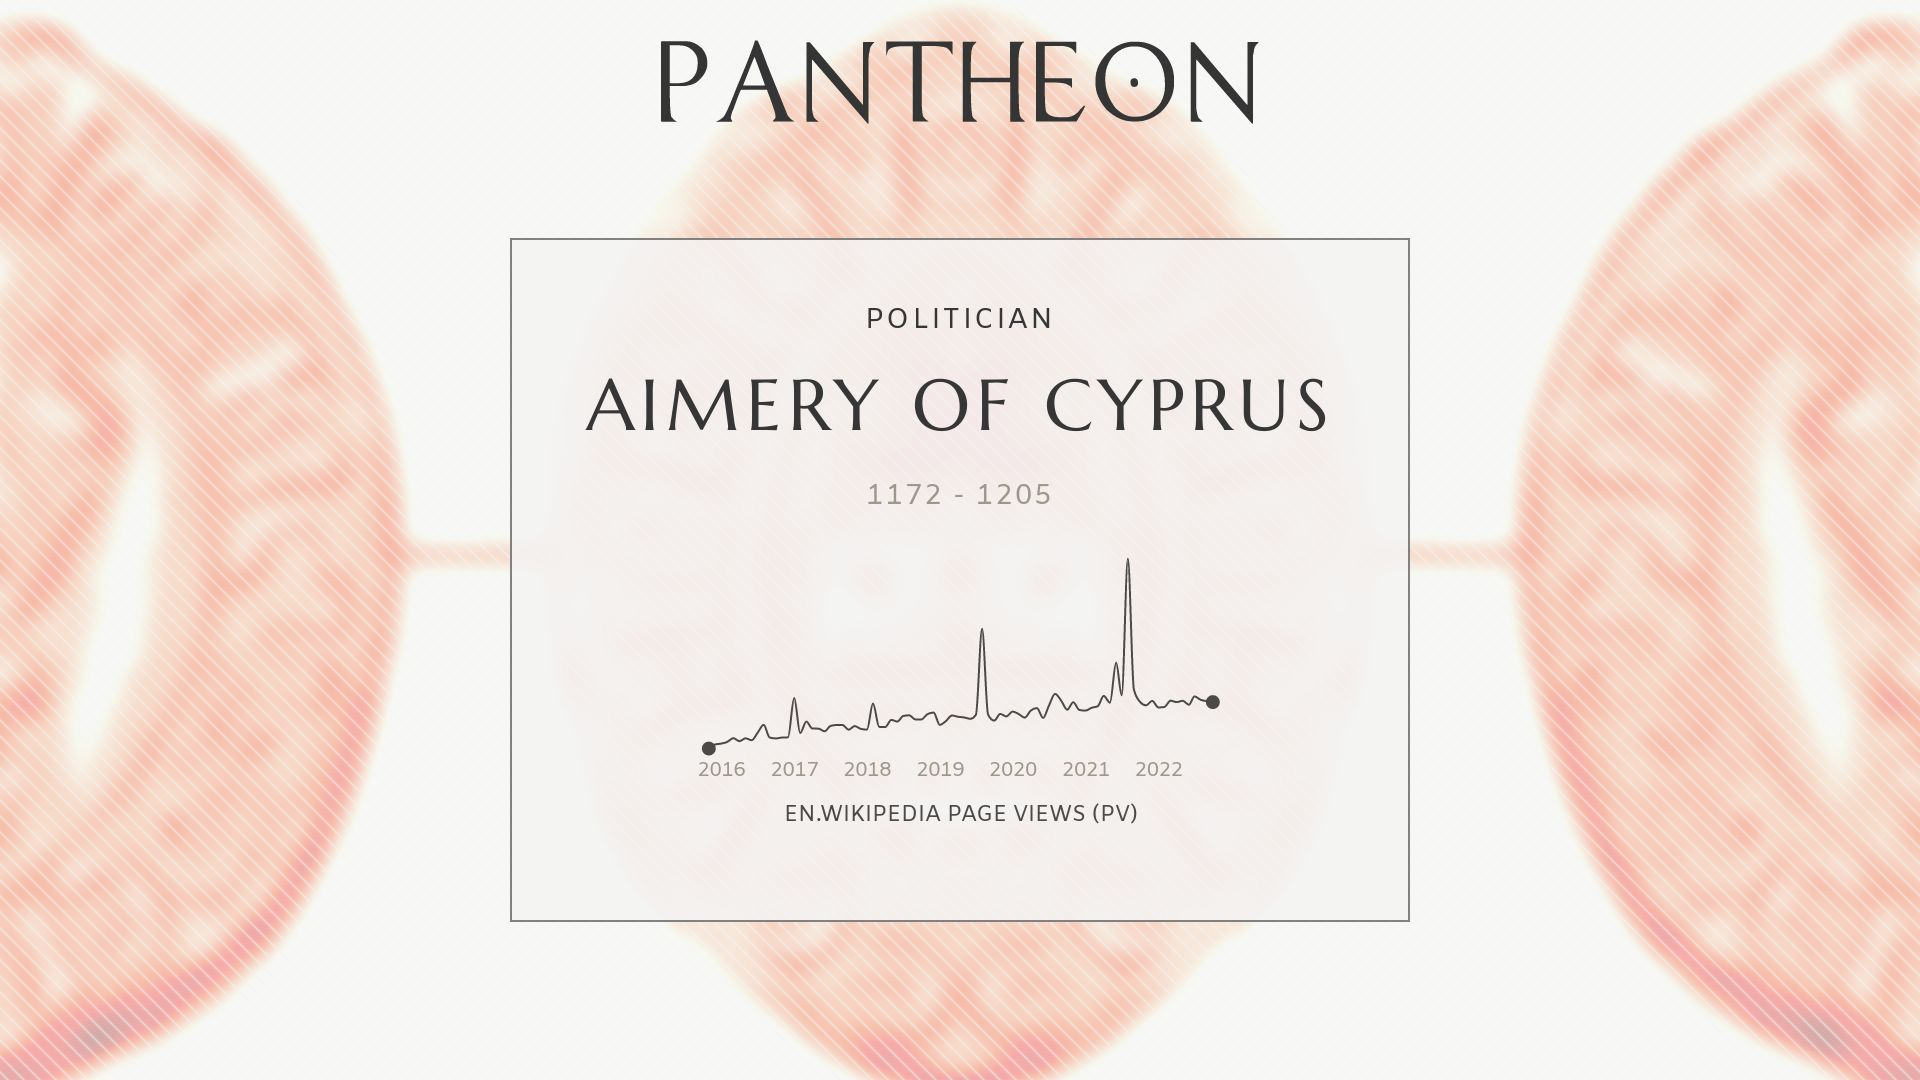 Aimery of Cyprus Biography | Pantheon